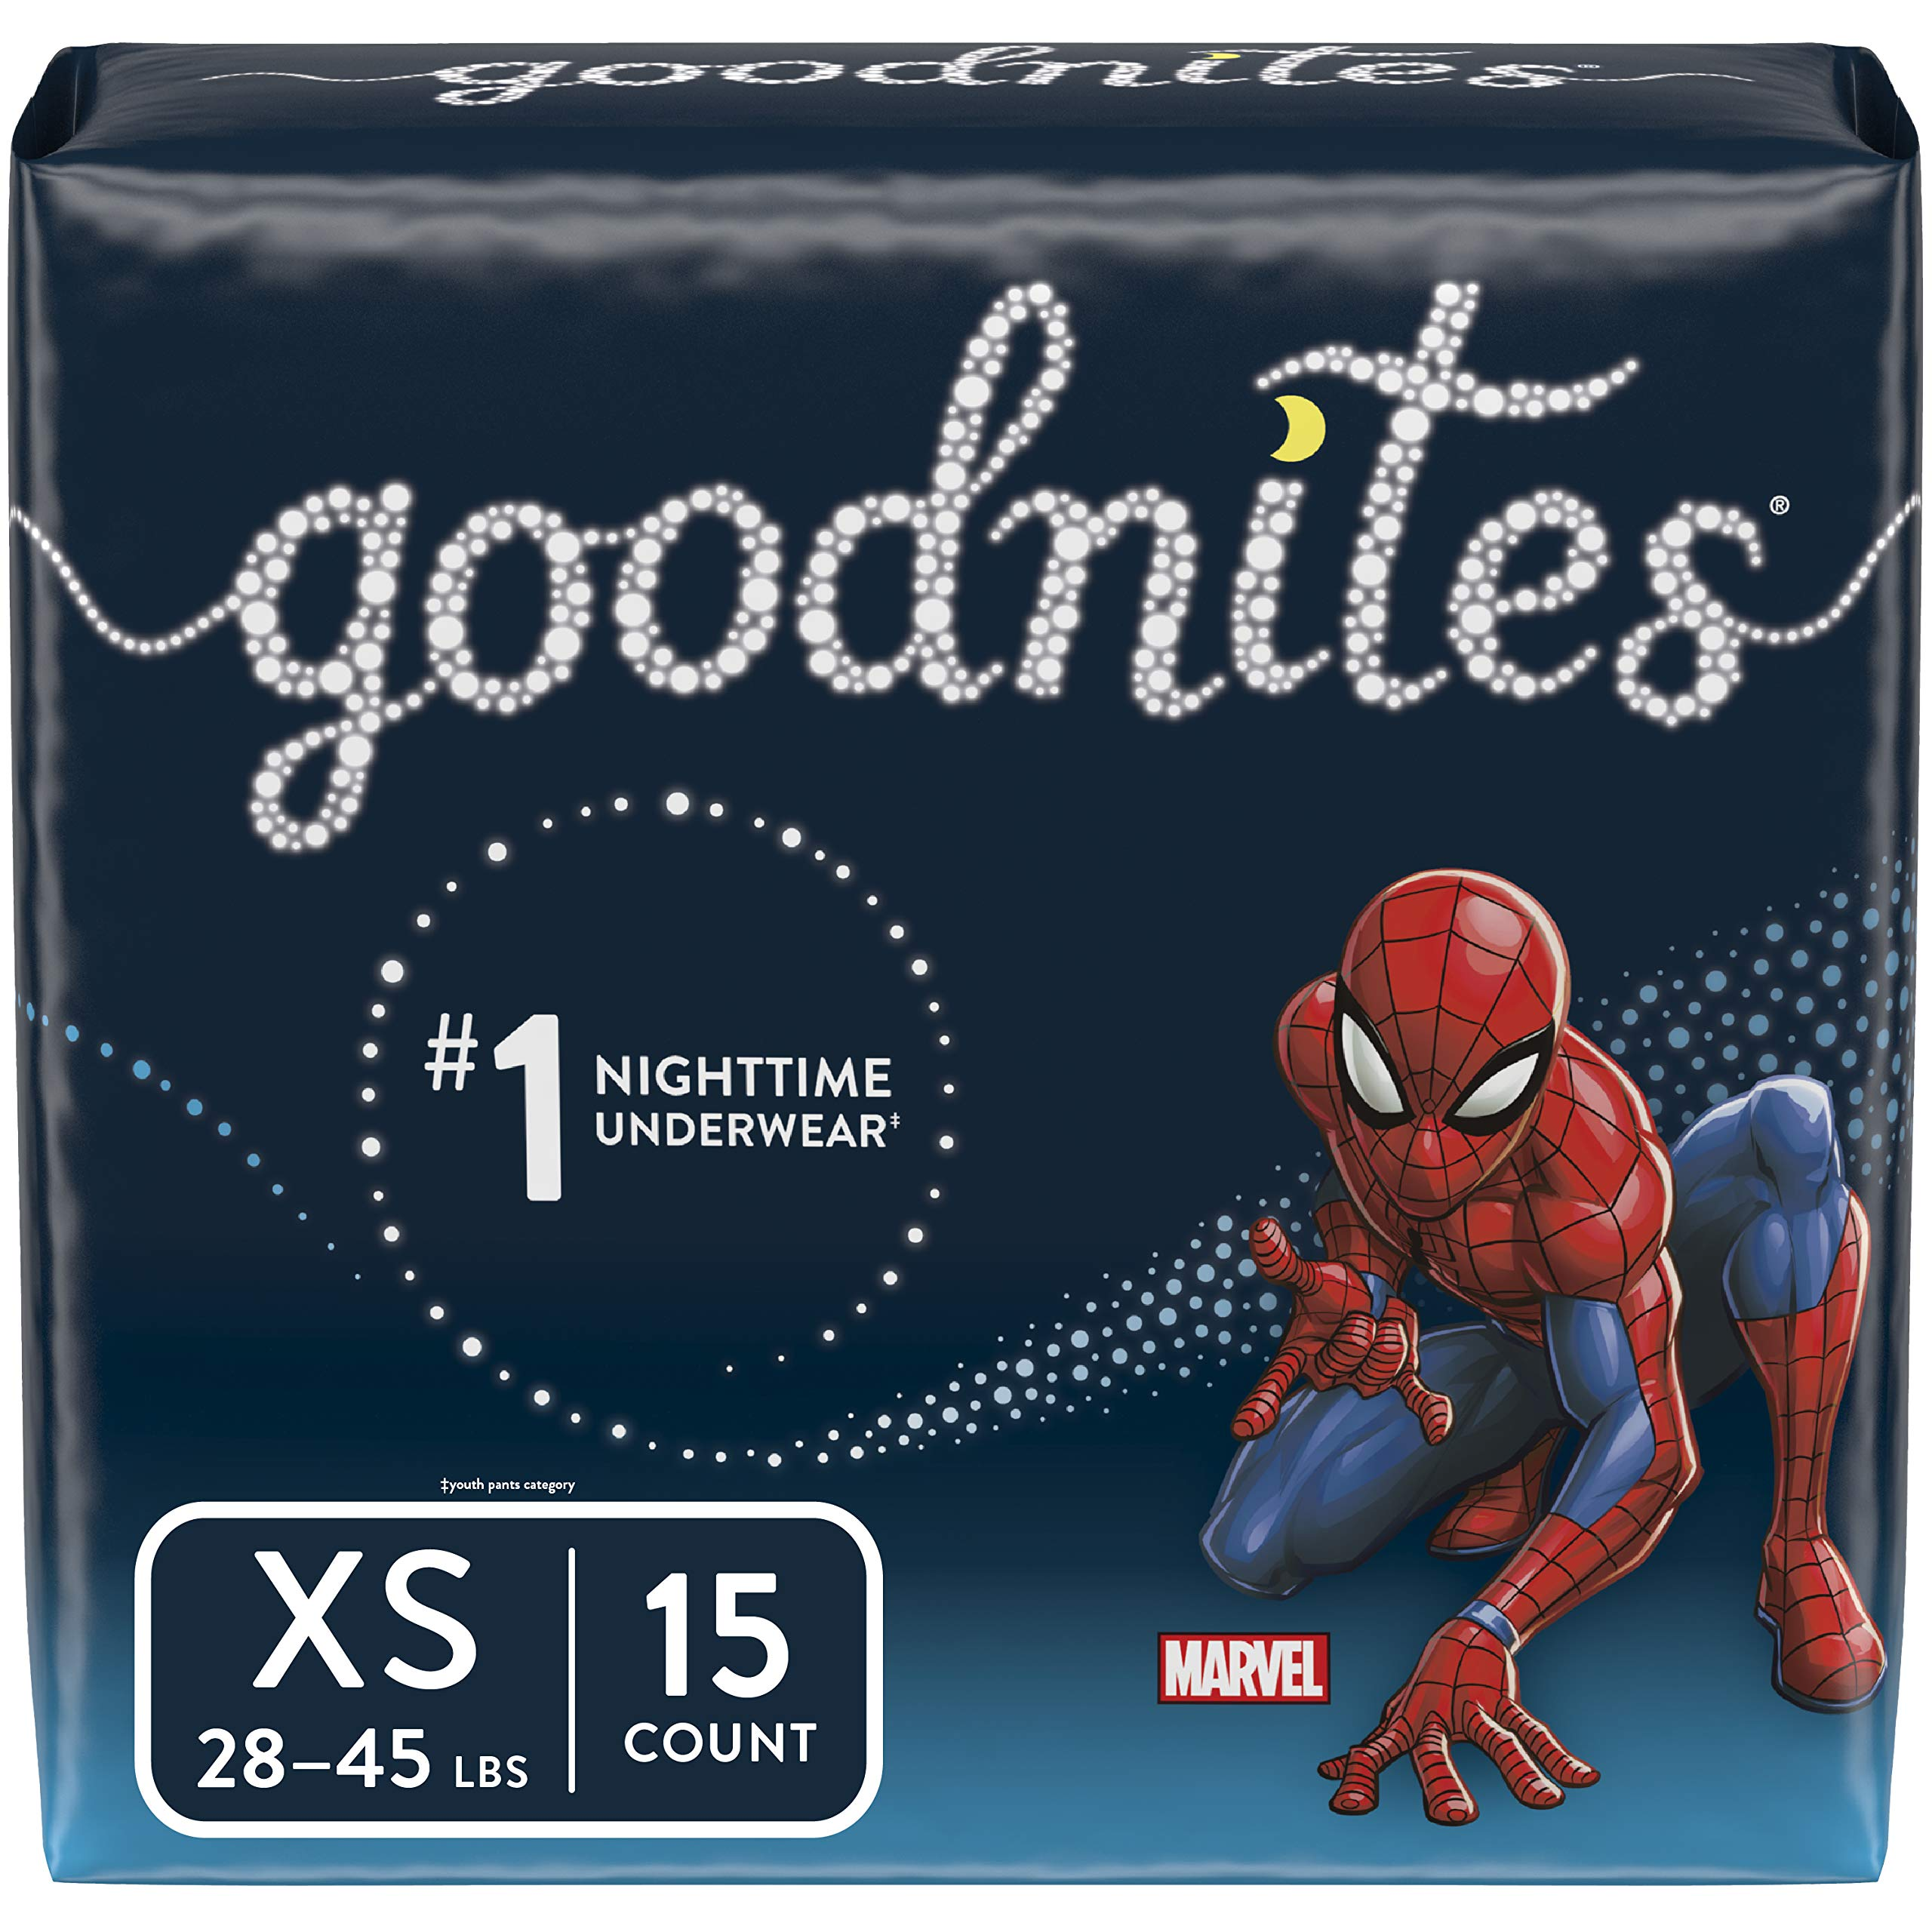 Goodnites Bedwetting Underwear for Boys, XS (28-45 lb.), 15 Ct, Jumbo Pack (Packaging May Vary) by GoodNites